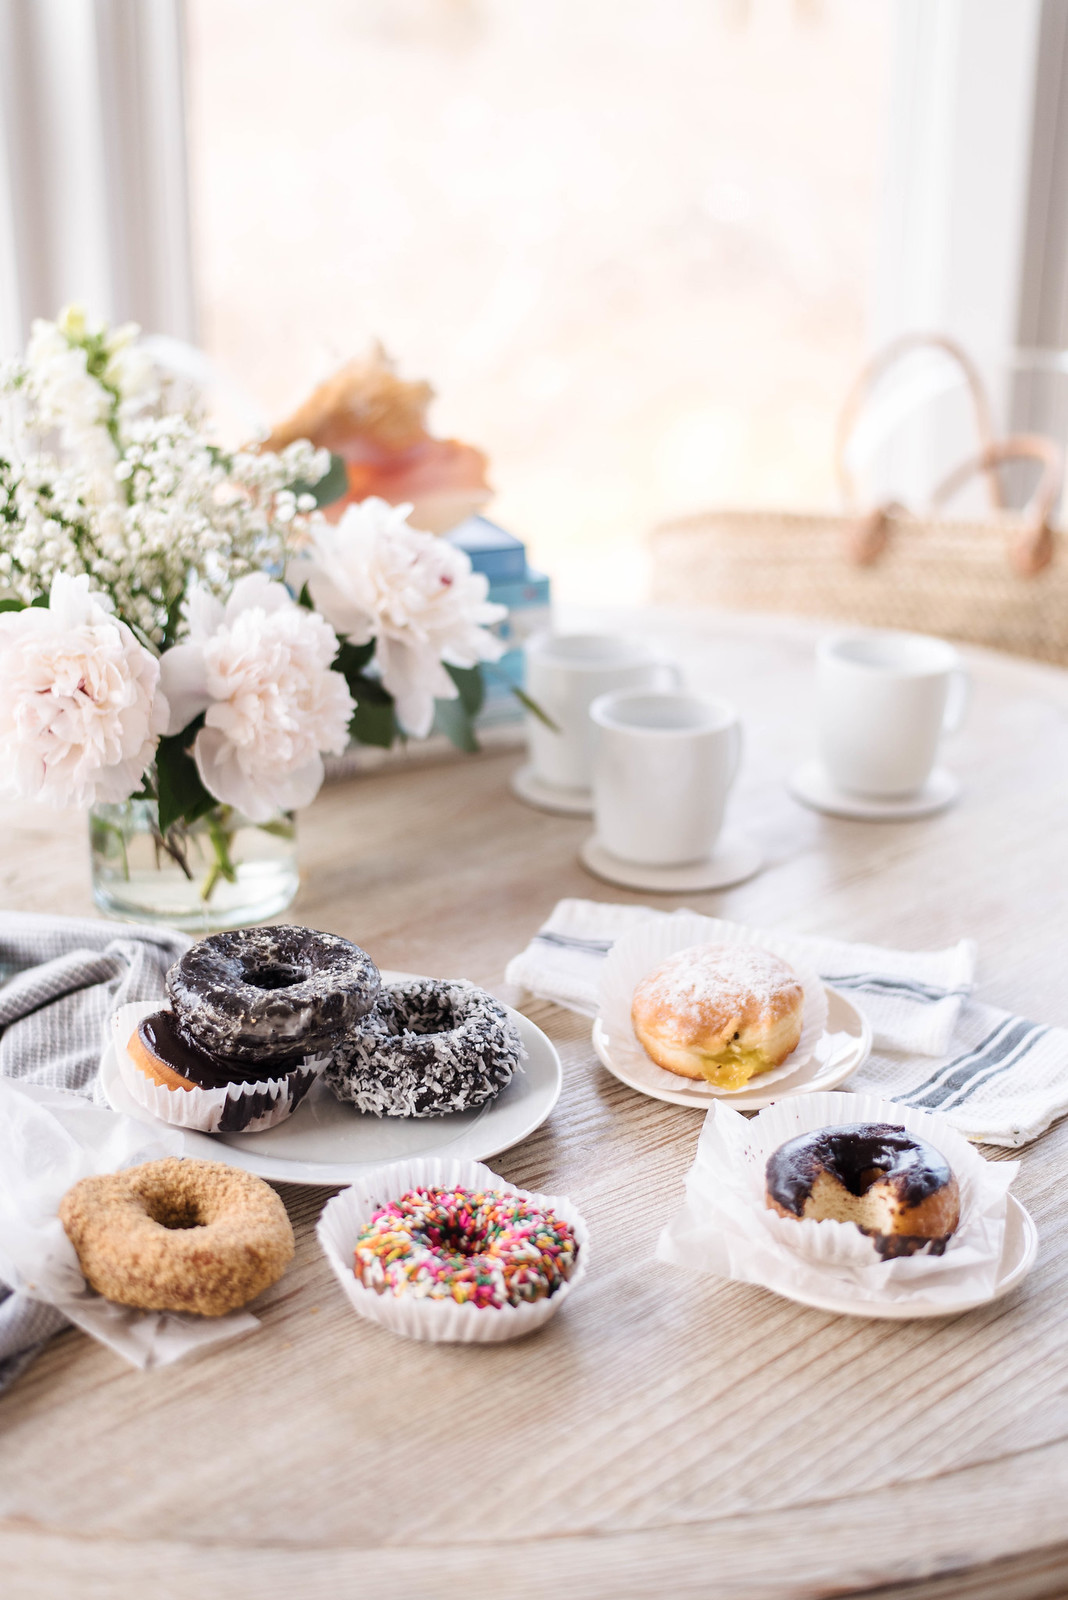 Donuts by the seaside on http://juliettelaura.blogspot.com/